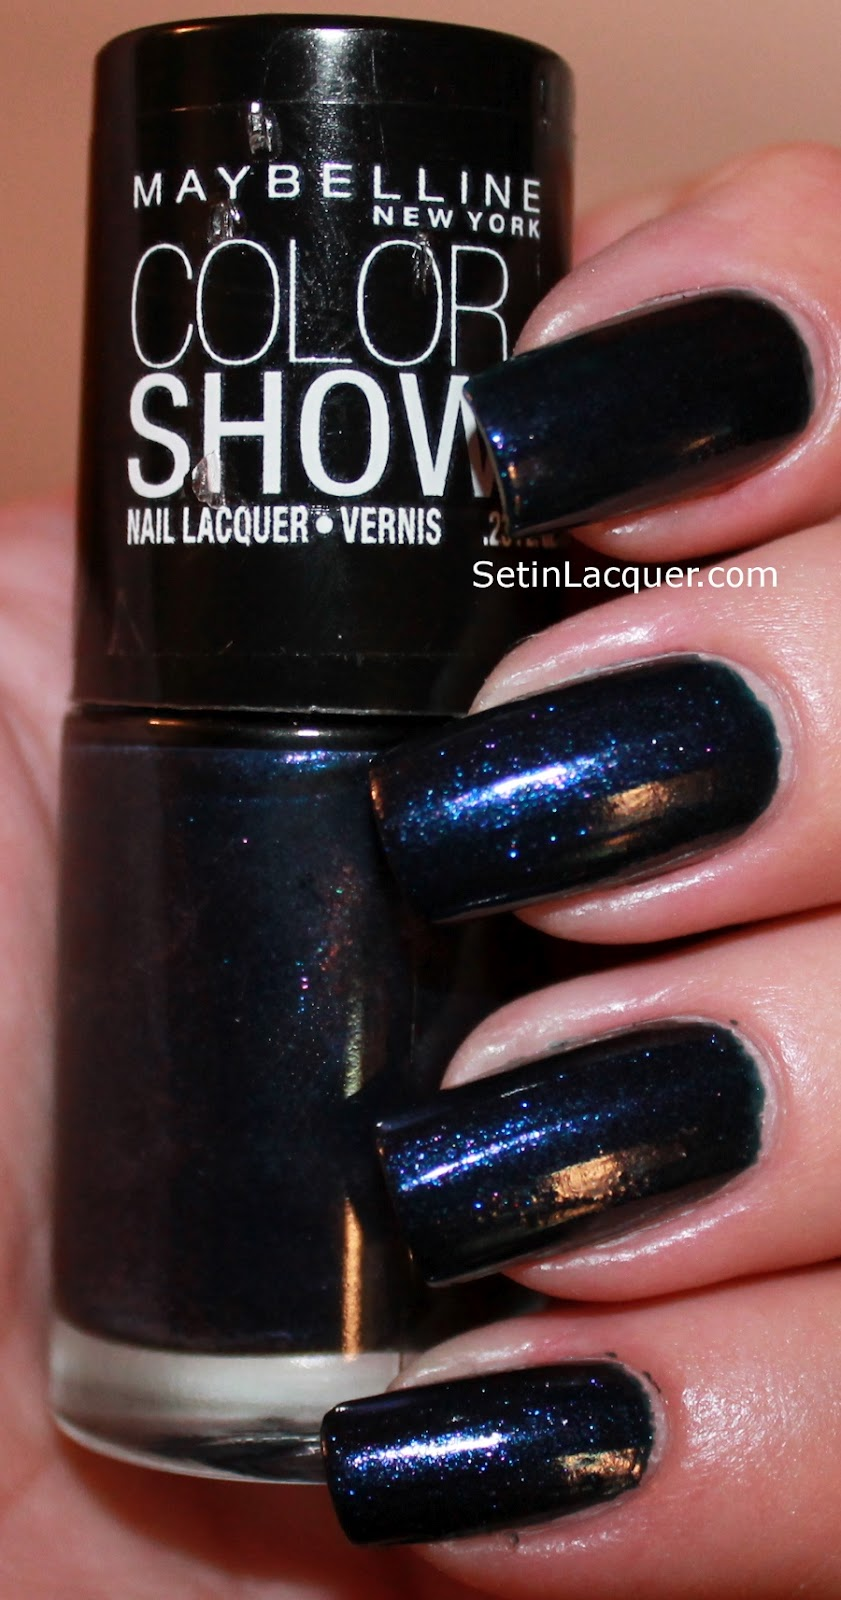 Maybelline Color Show Nail Art Masterclass: Maybelline Color Show